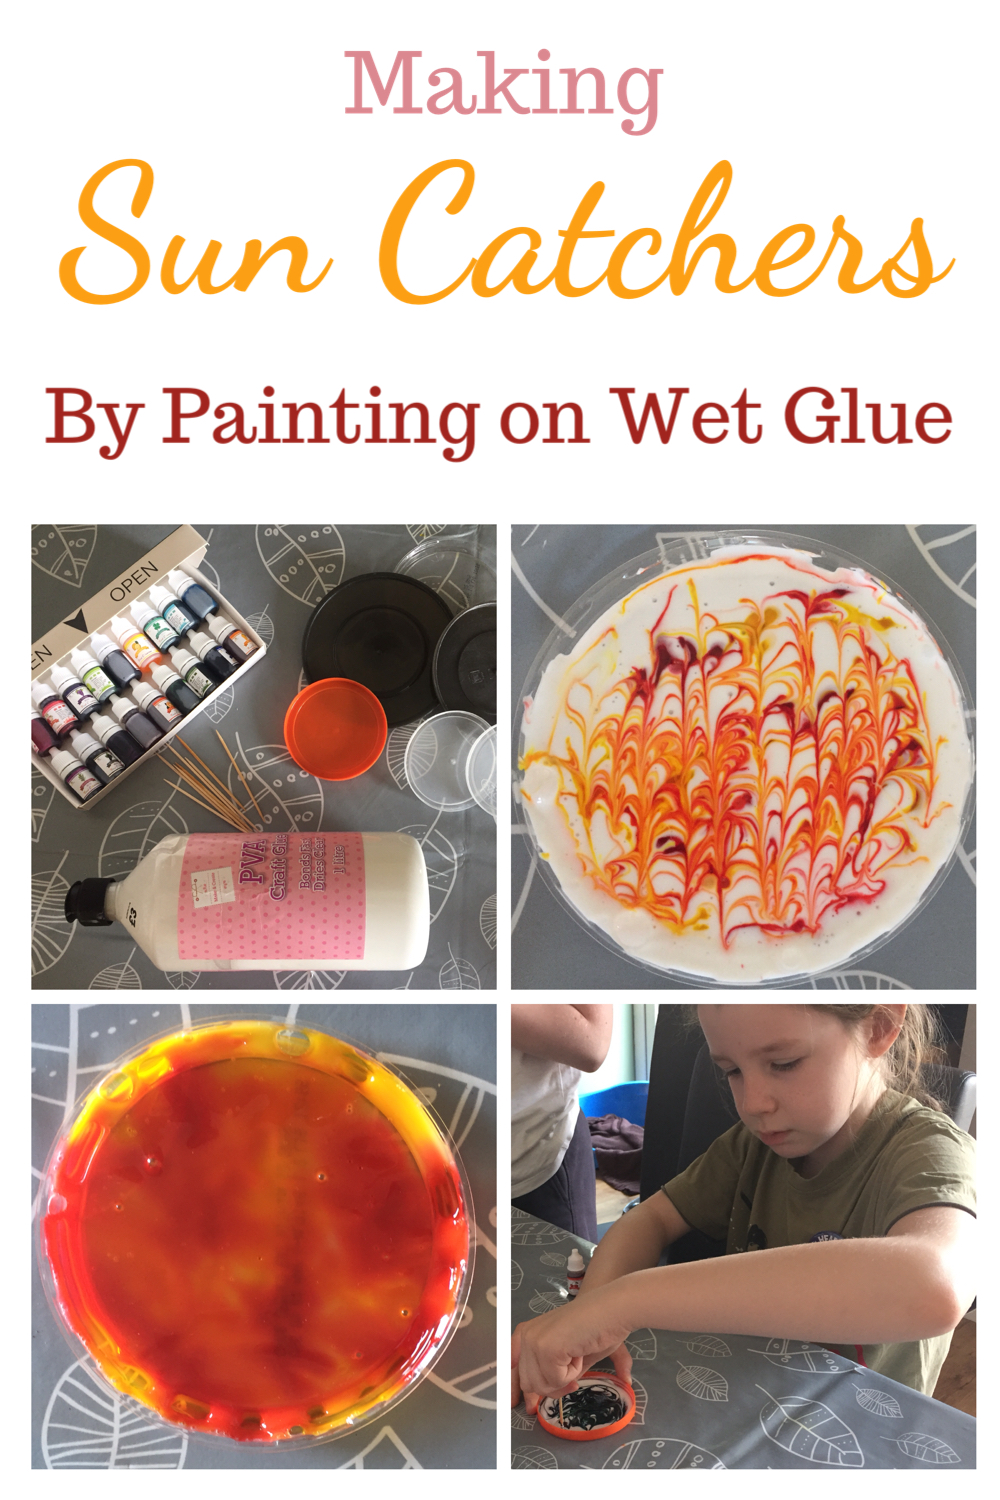 Making sun catchers by painting on wet glue